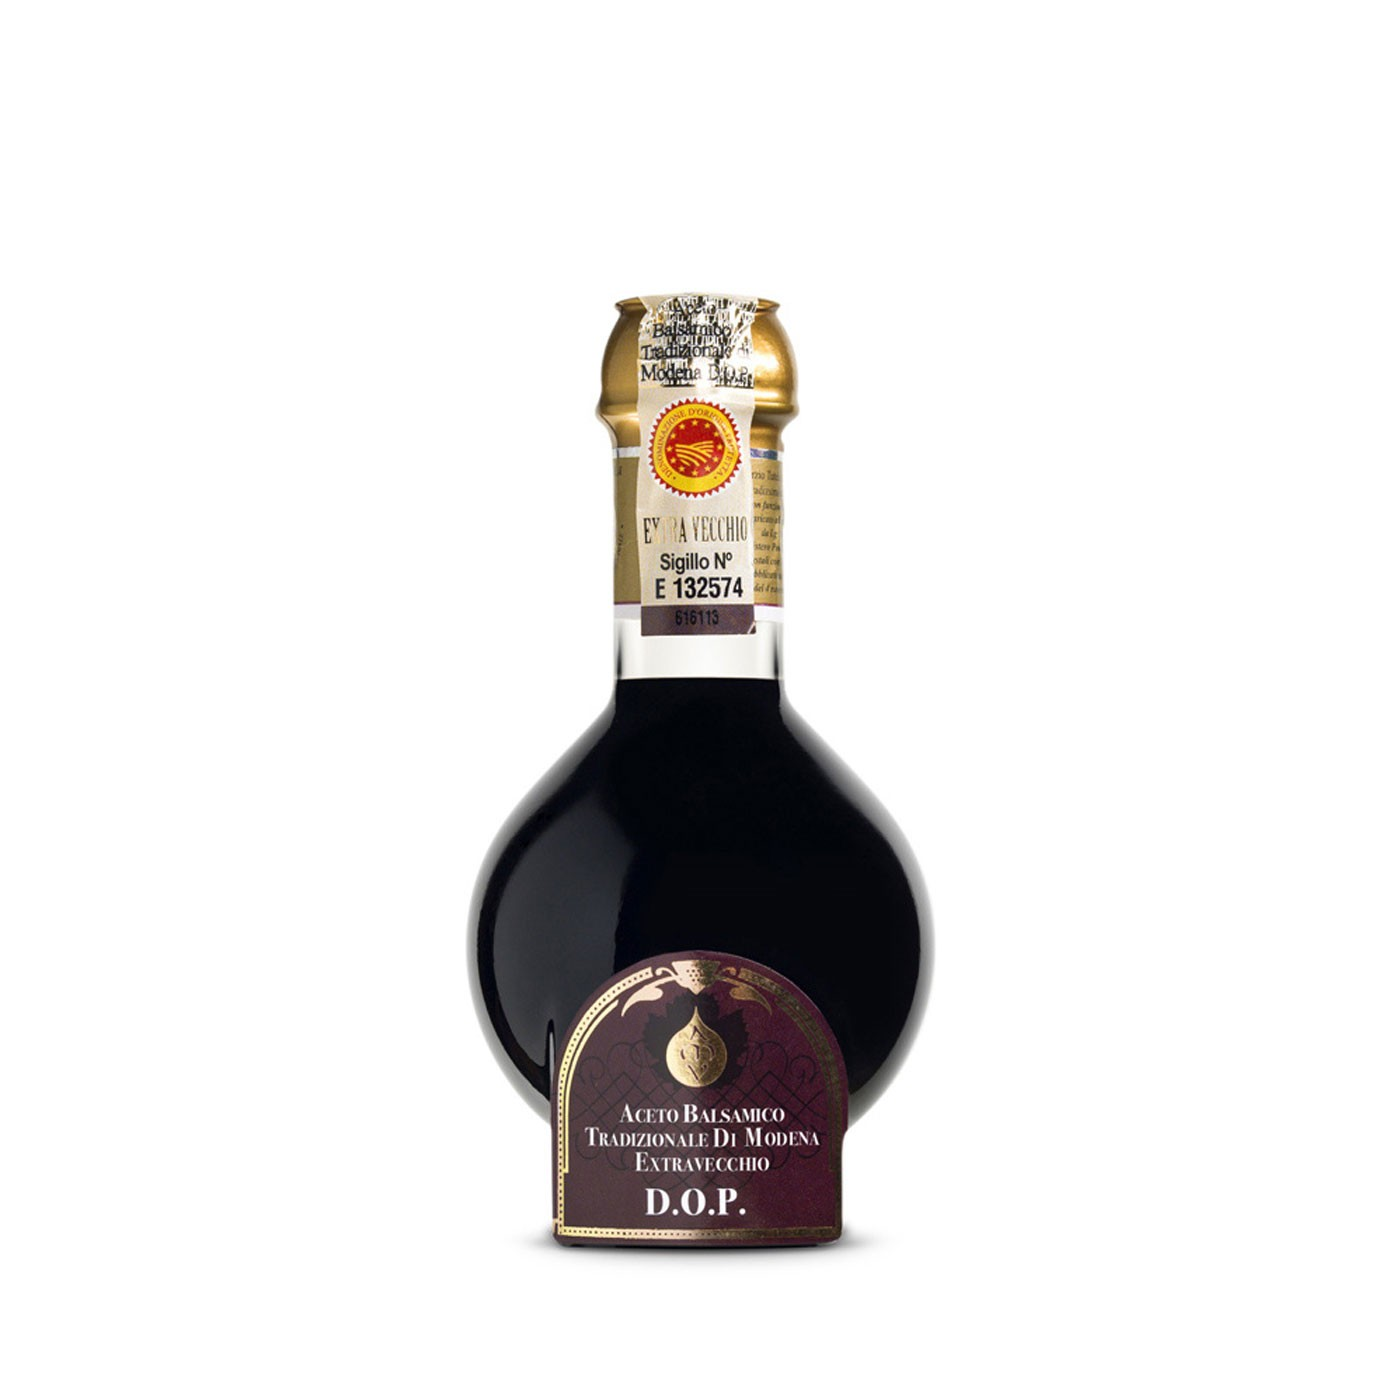 Traditional Balsamic Vinegar of Modena DOP Aged 25+ years Gold 3.4 oz - Acetomodena | Eataly.com